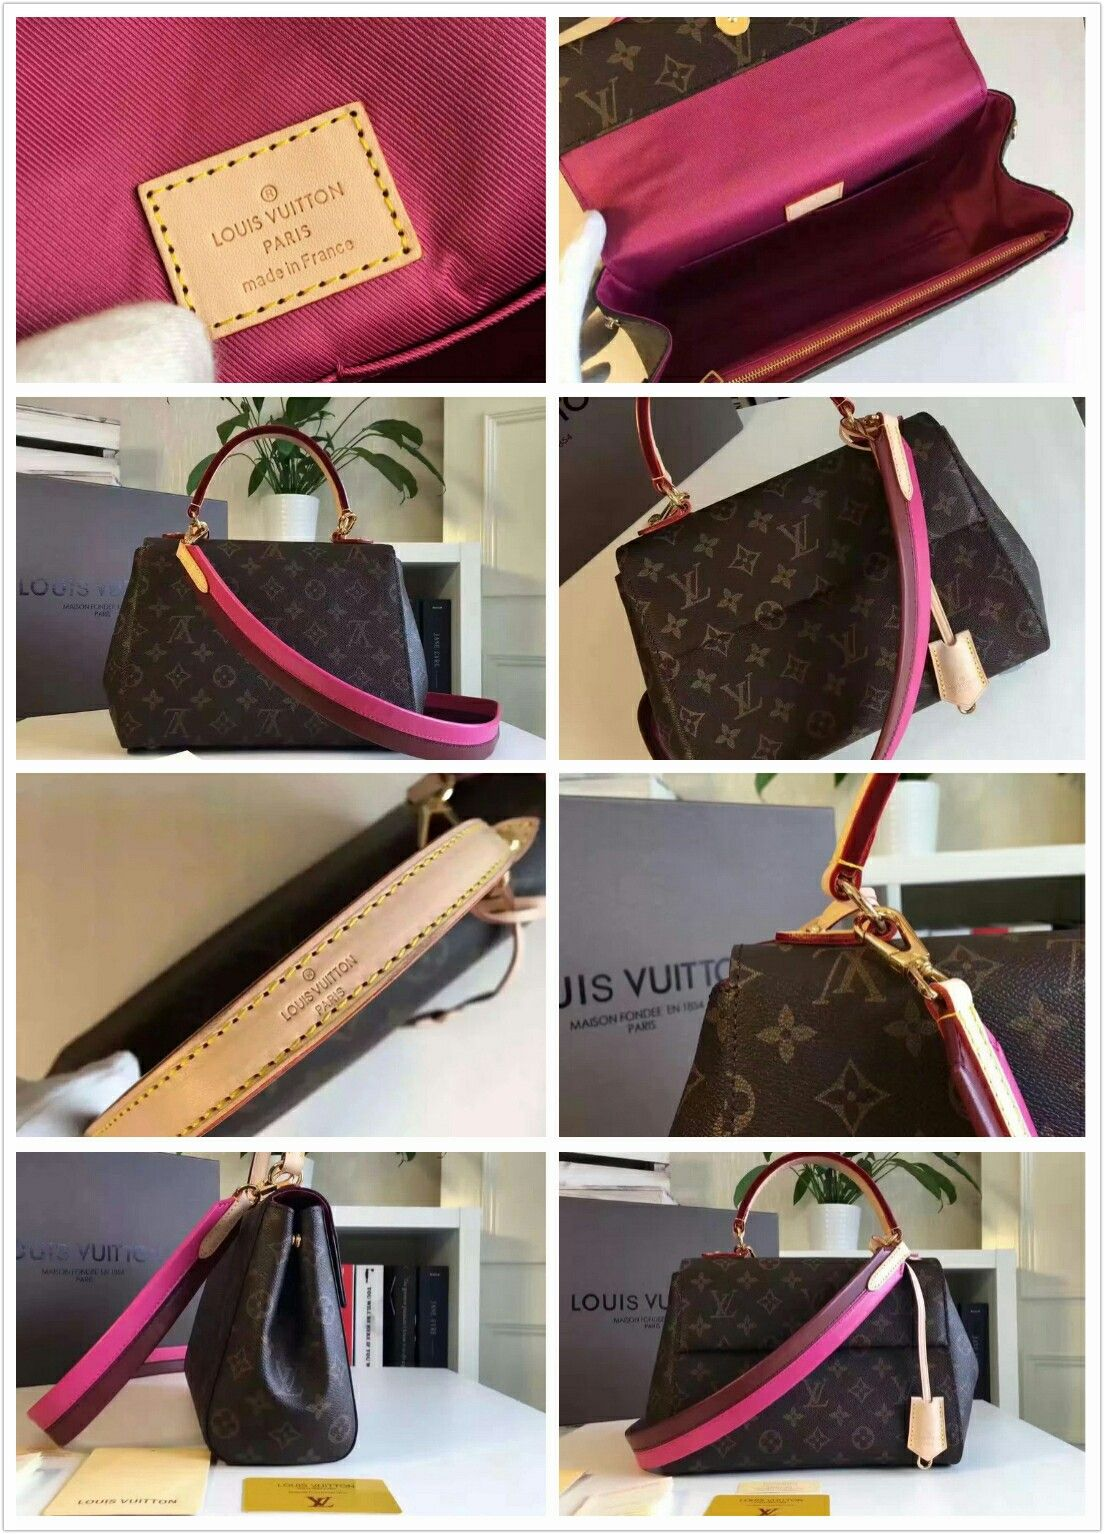 75e72ad31bca Louis Vuitton Cluny BB bag availablenow. DM me for low price. Get free  scarf buy now.  louisvuitton  louisvuittoncluny  clunybb  lvcluny  lvclunybb